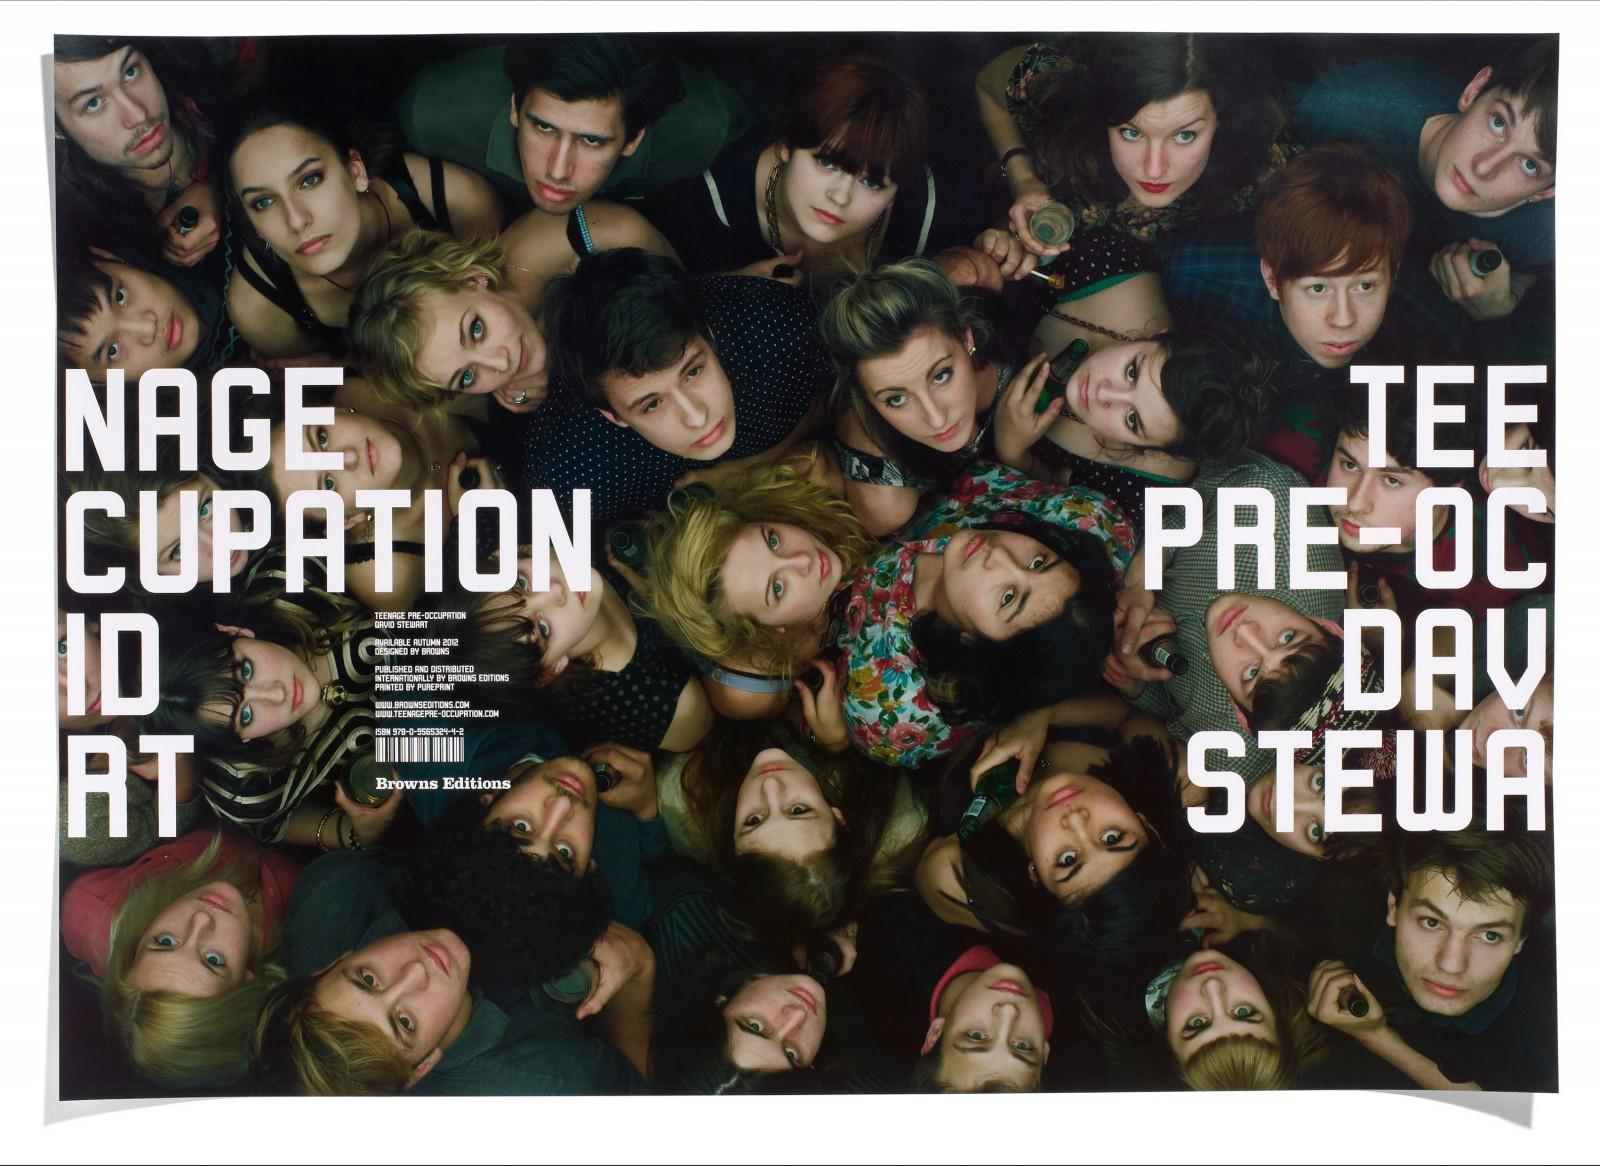 David Stewart Print Ad -  Teenage Pre-occupation, 1